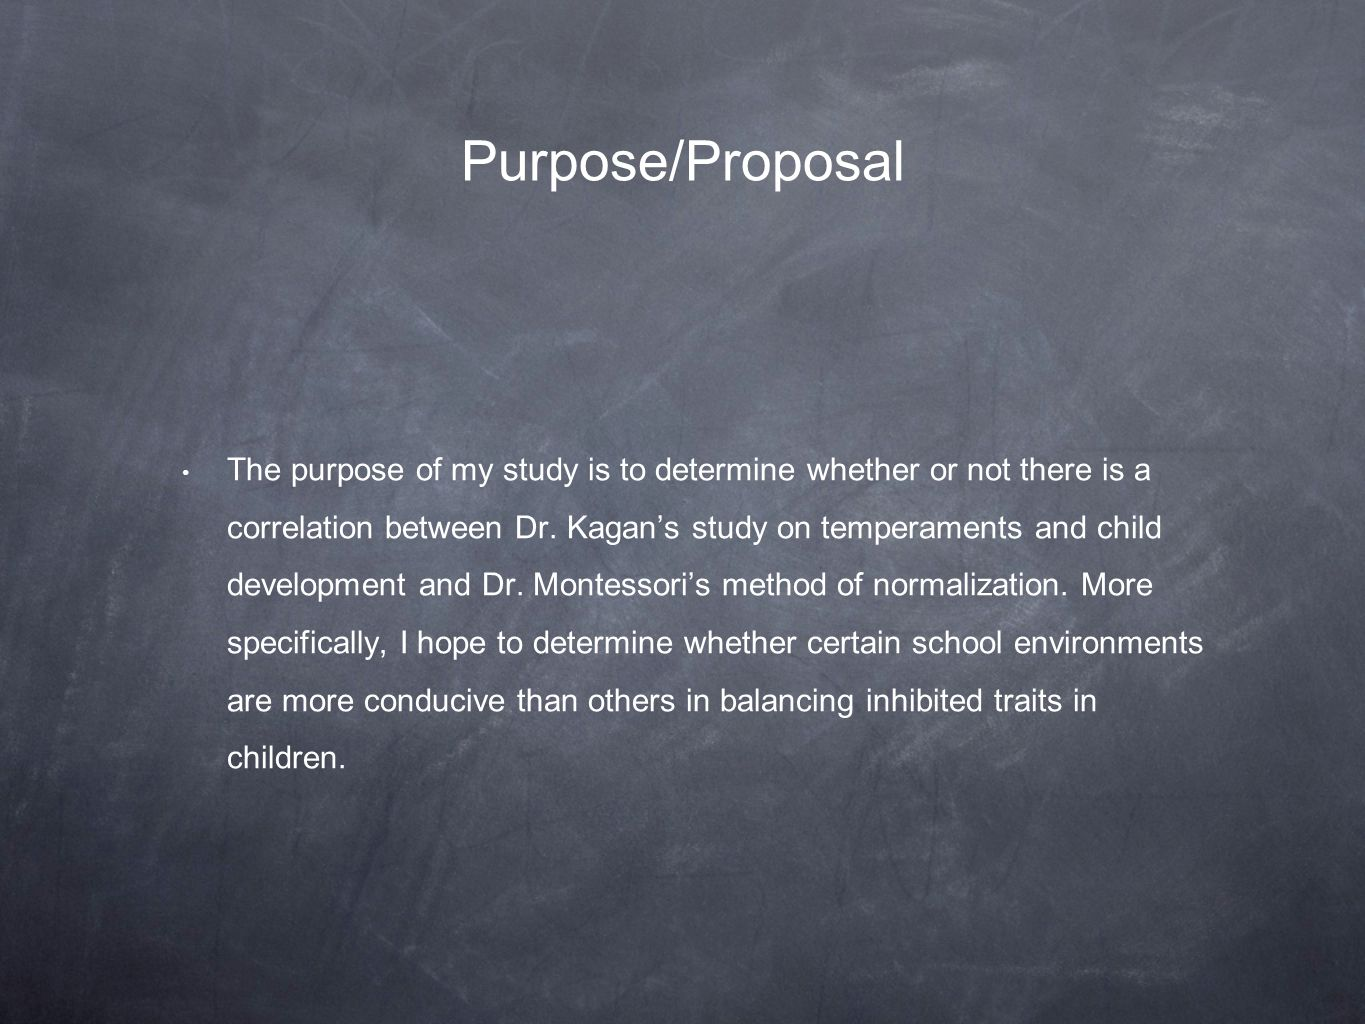 Purpose/Proposal